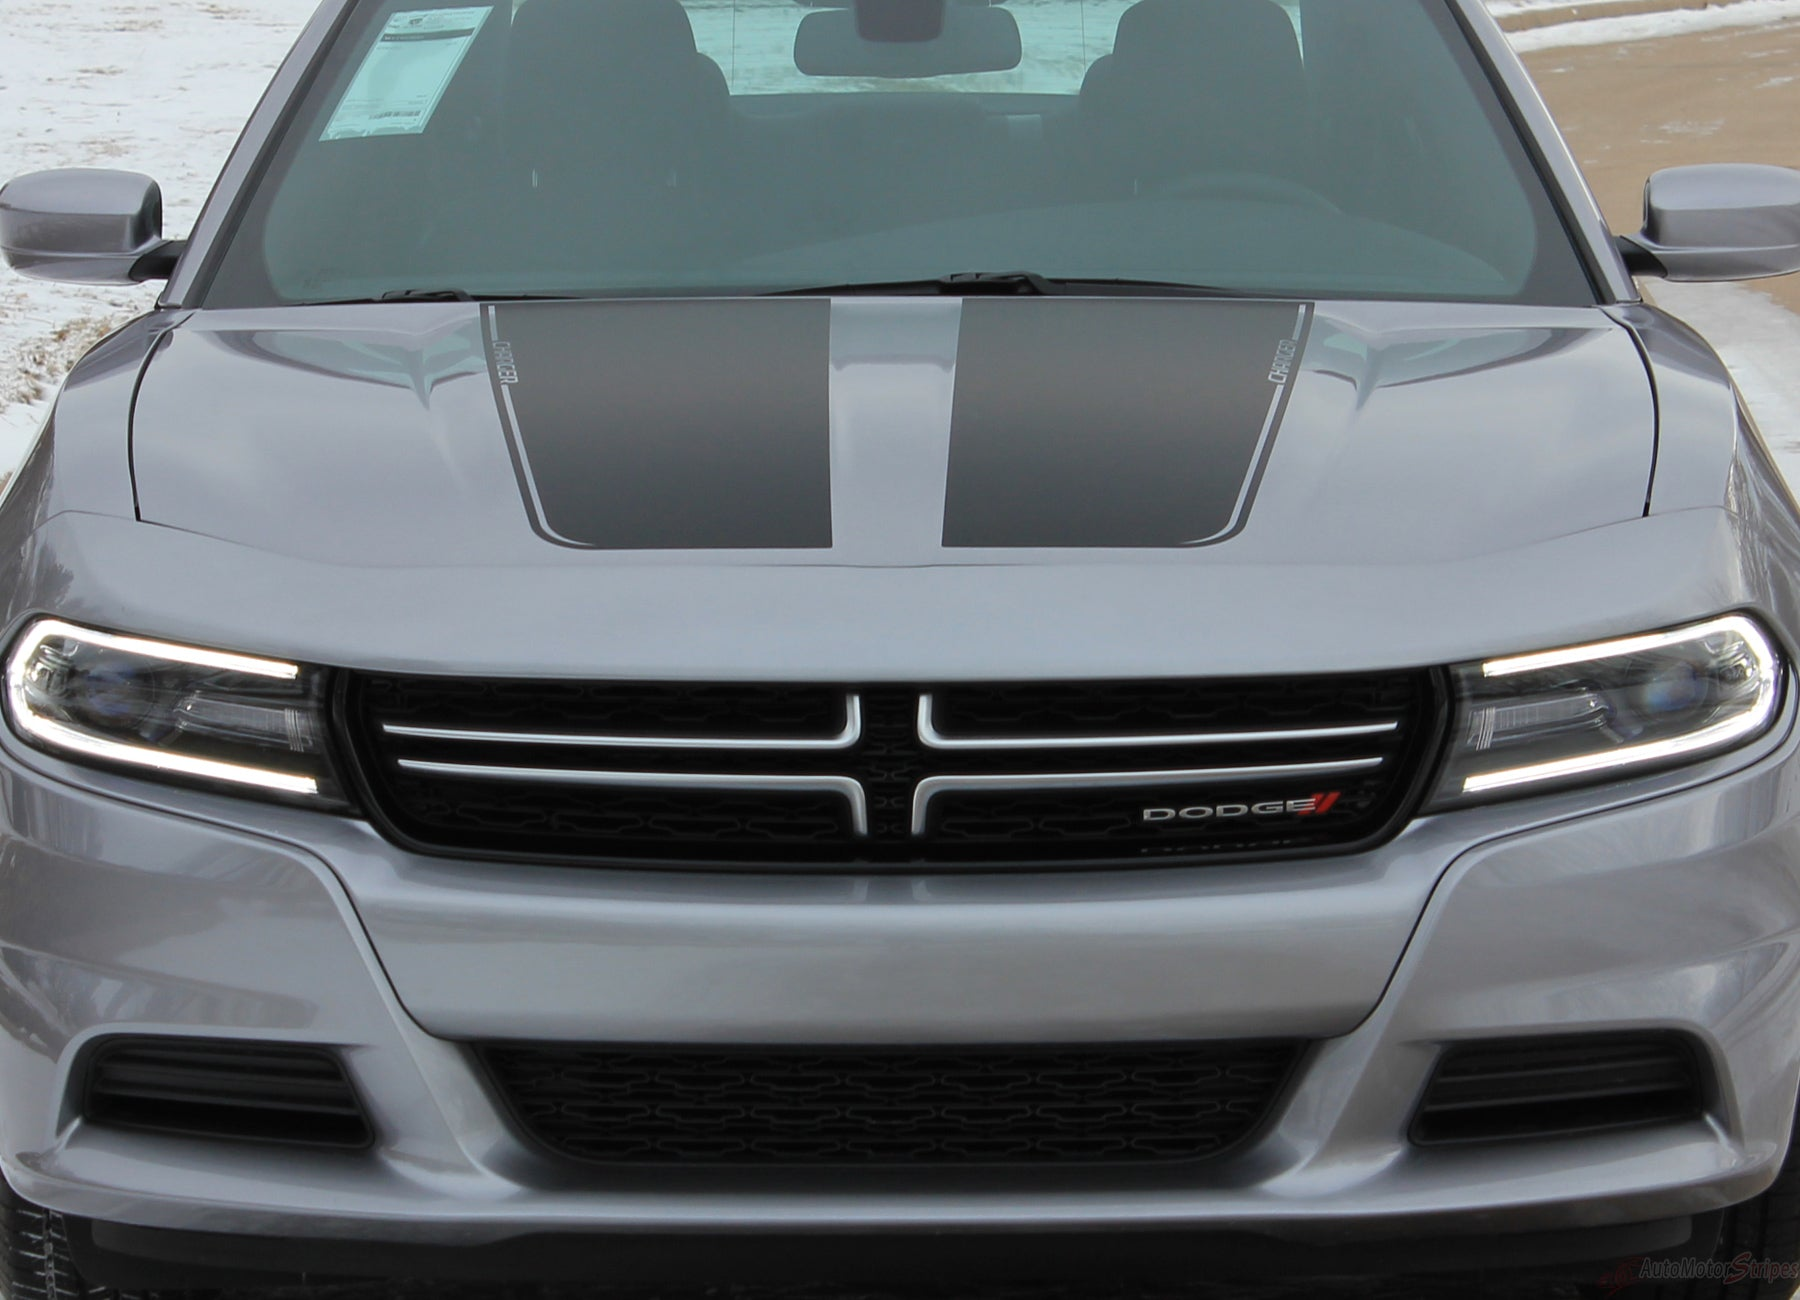 Dodge Charger 2015 2016 2017 2018 2019 Hood Center Accent Decal Stripe